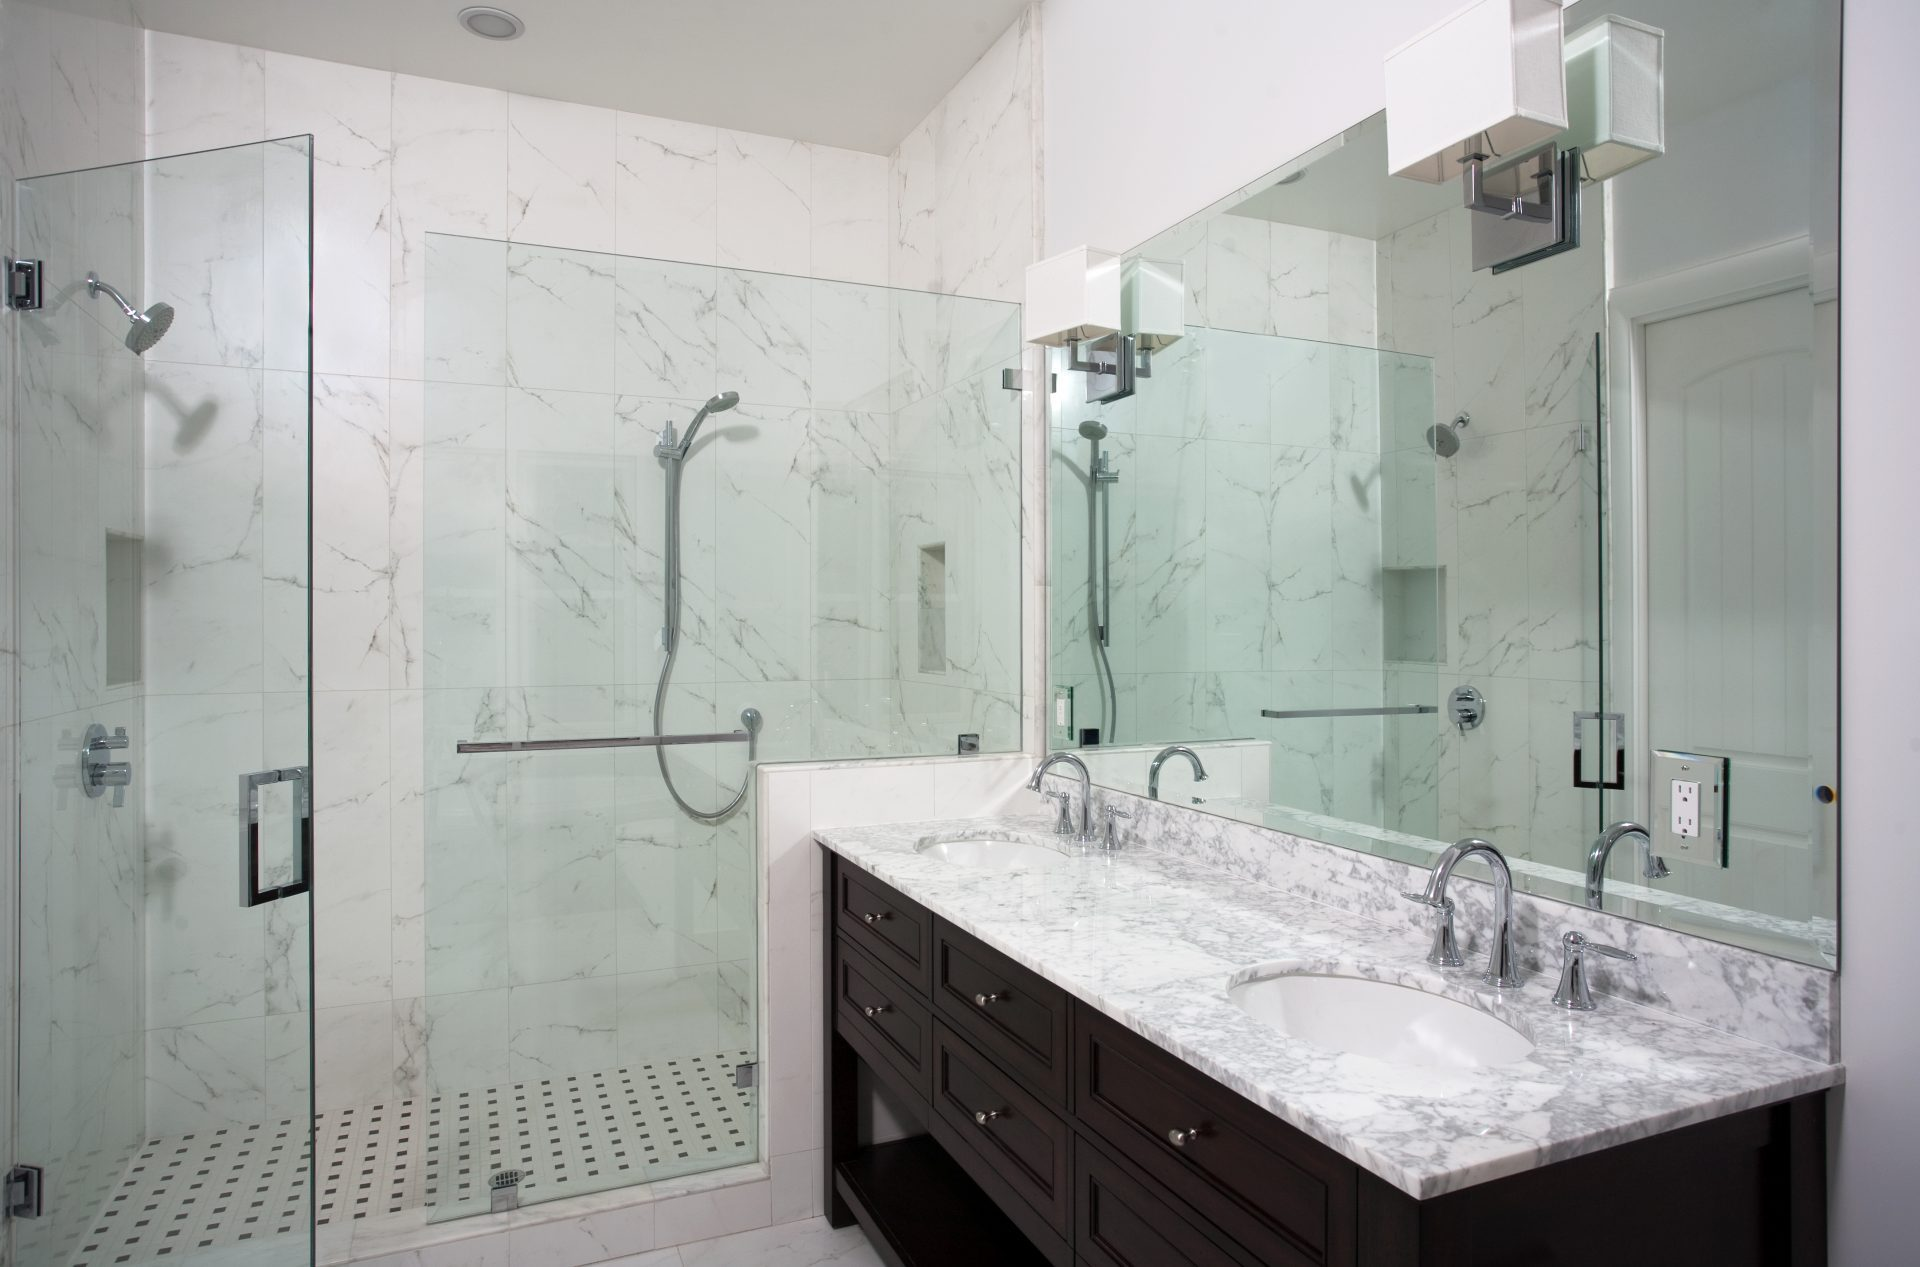 How Much Does a Bathroom Remodel Cost? Setting Realistic Budget Tips